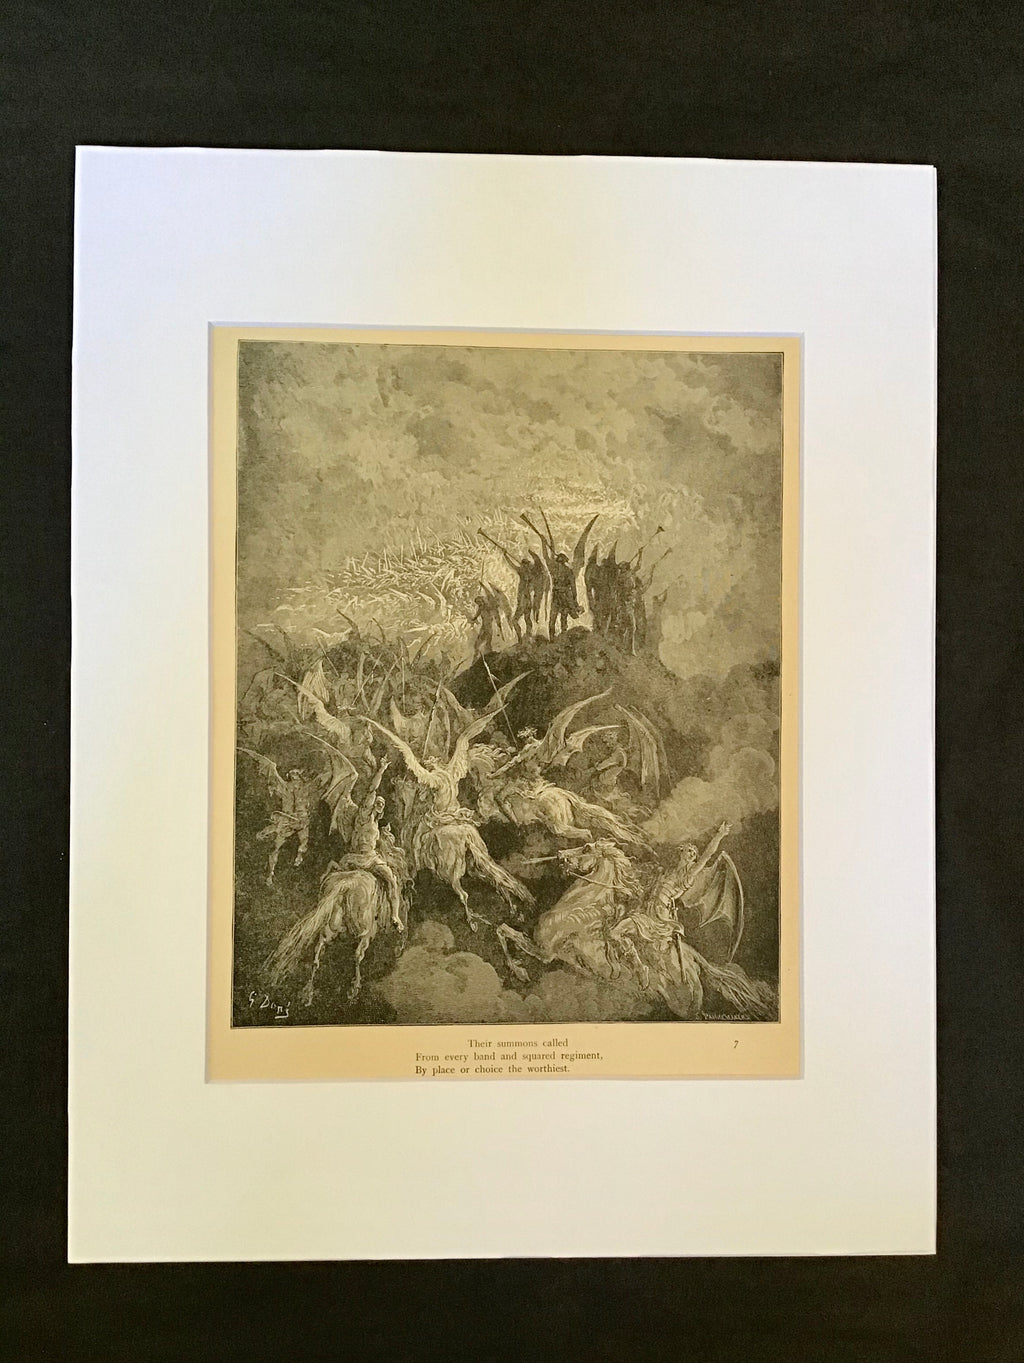 Gustave Doré Matted Print- For Miltons Paradise Lost- Book I Lines 757-759